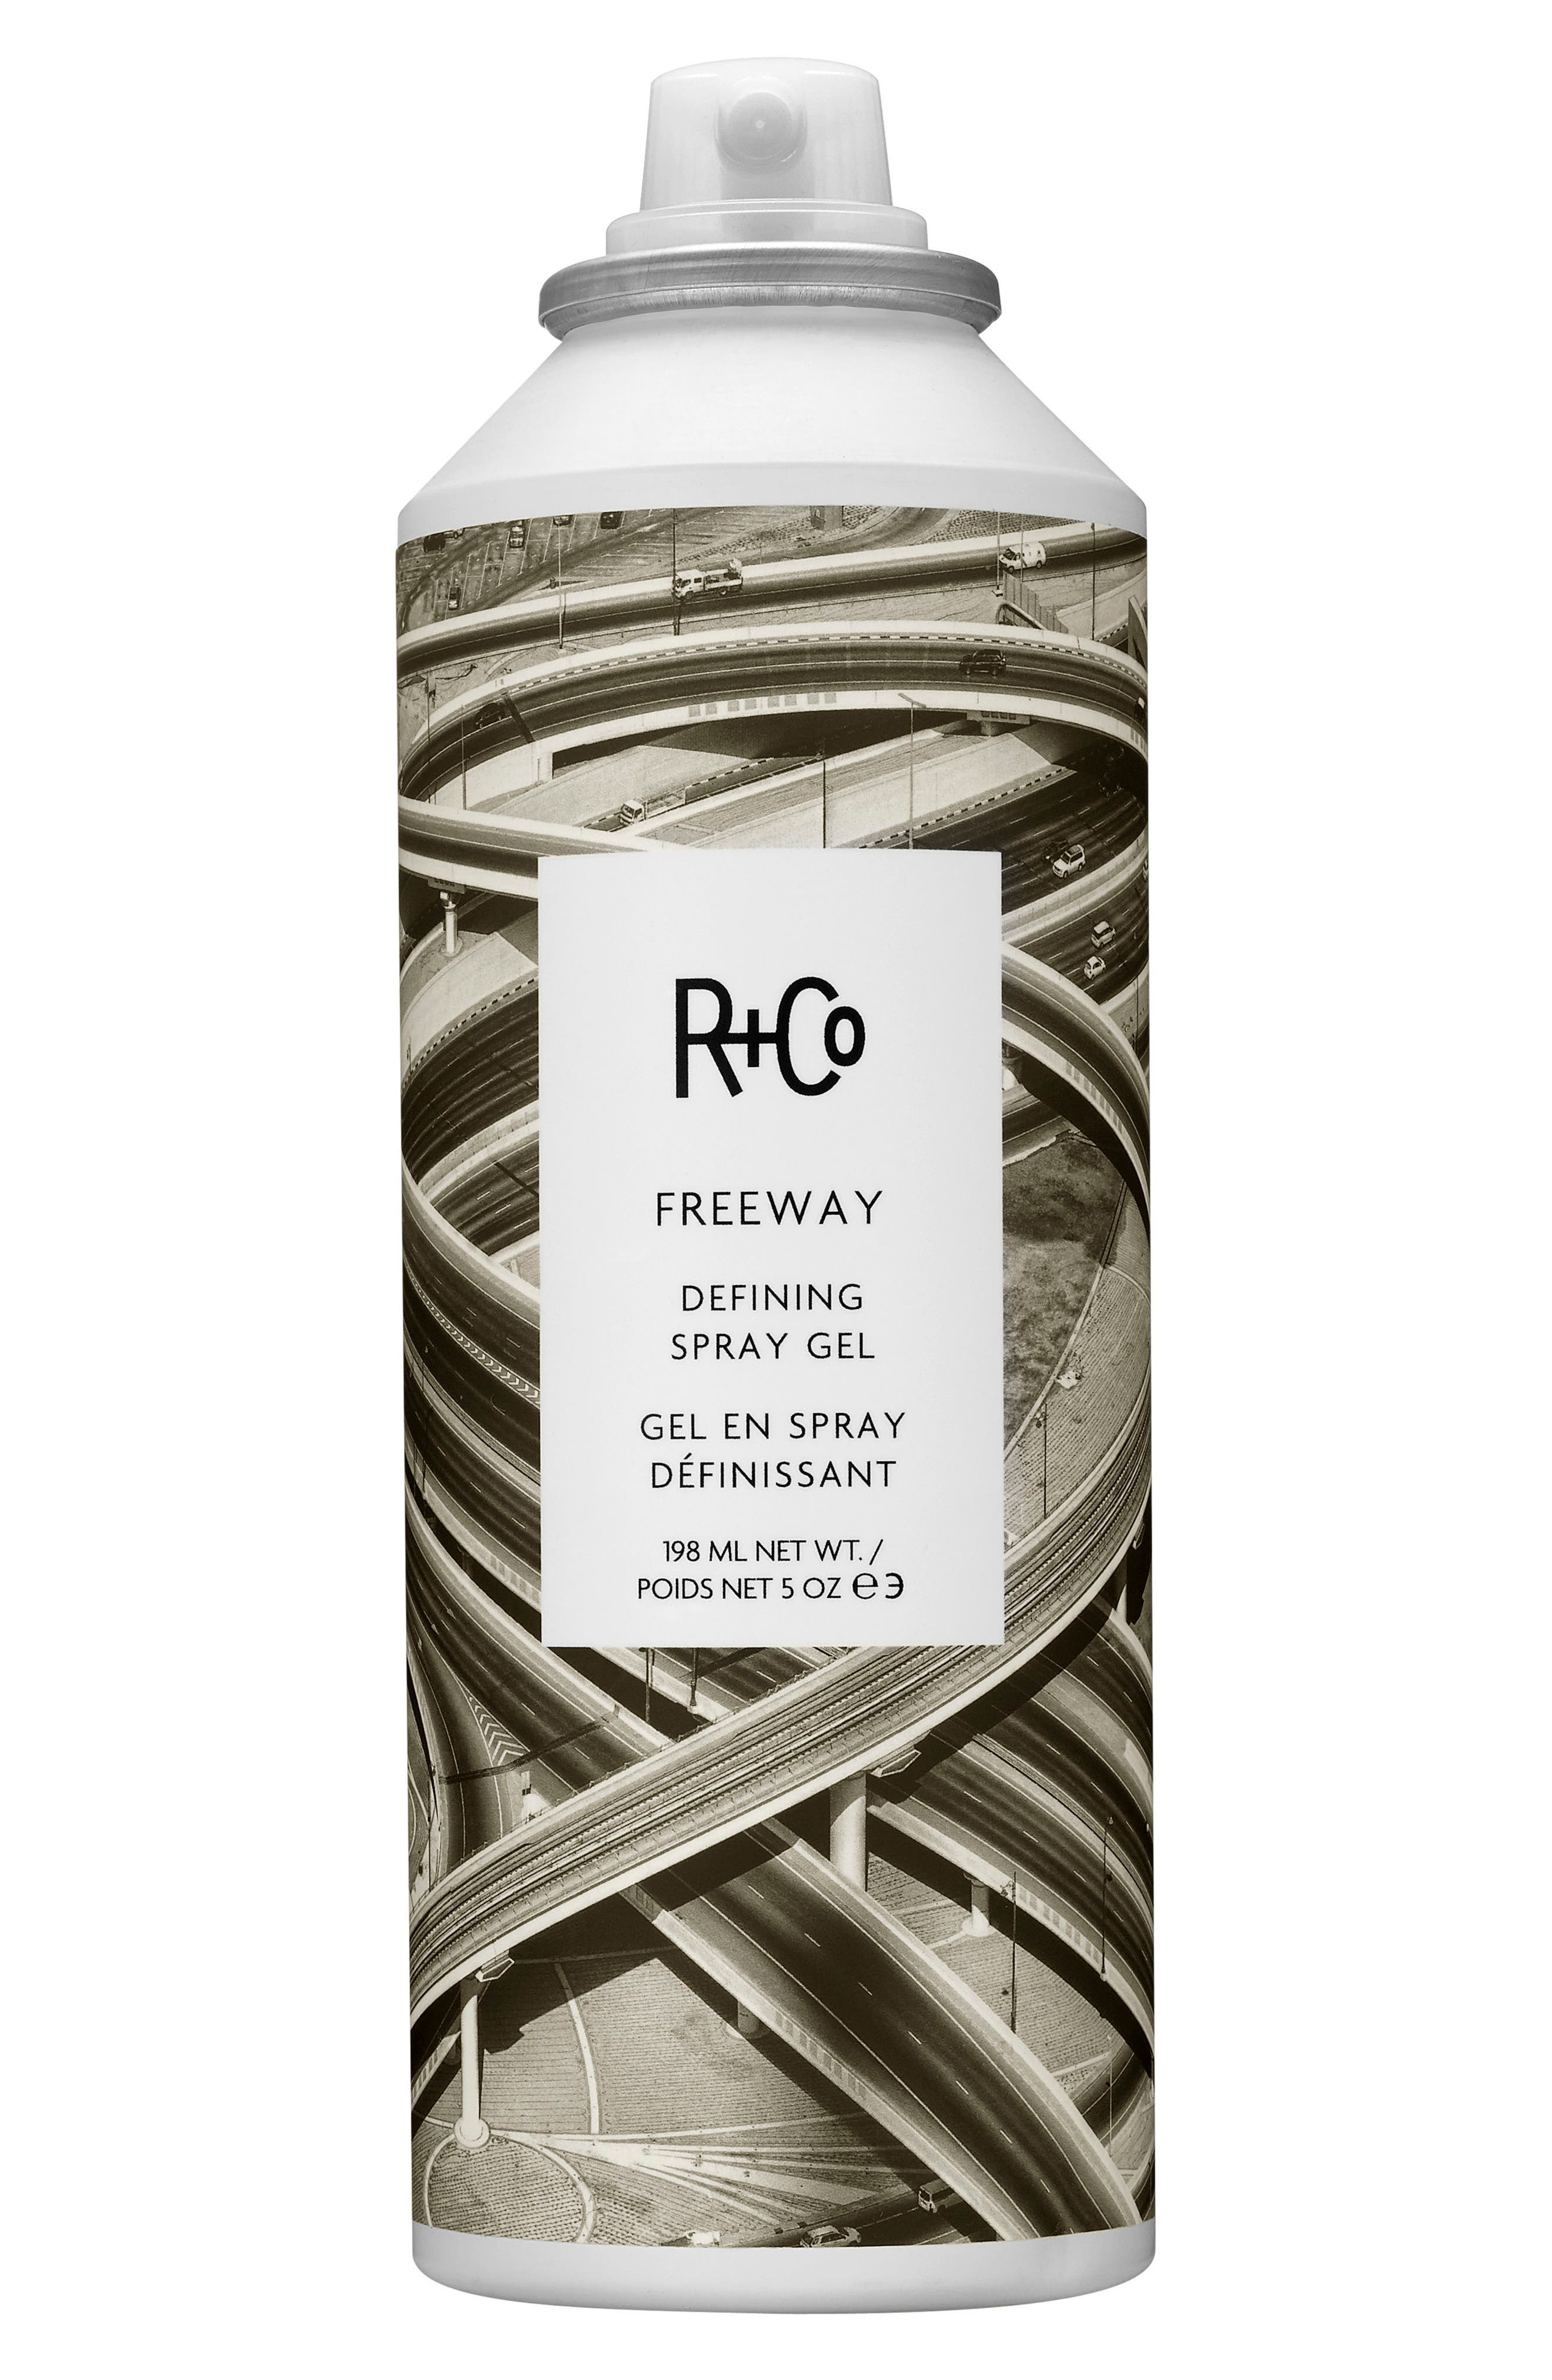 Alternate Image 1 Selected - SPACE.NK.apothecary R+Co Freeway Defining Spray Gel